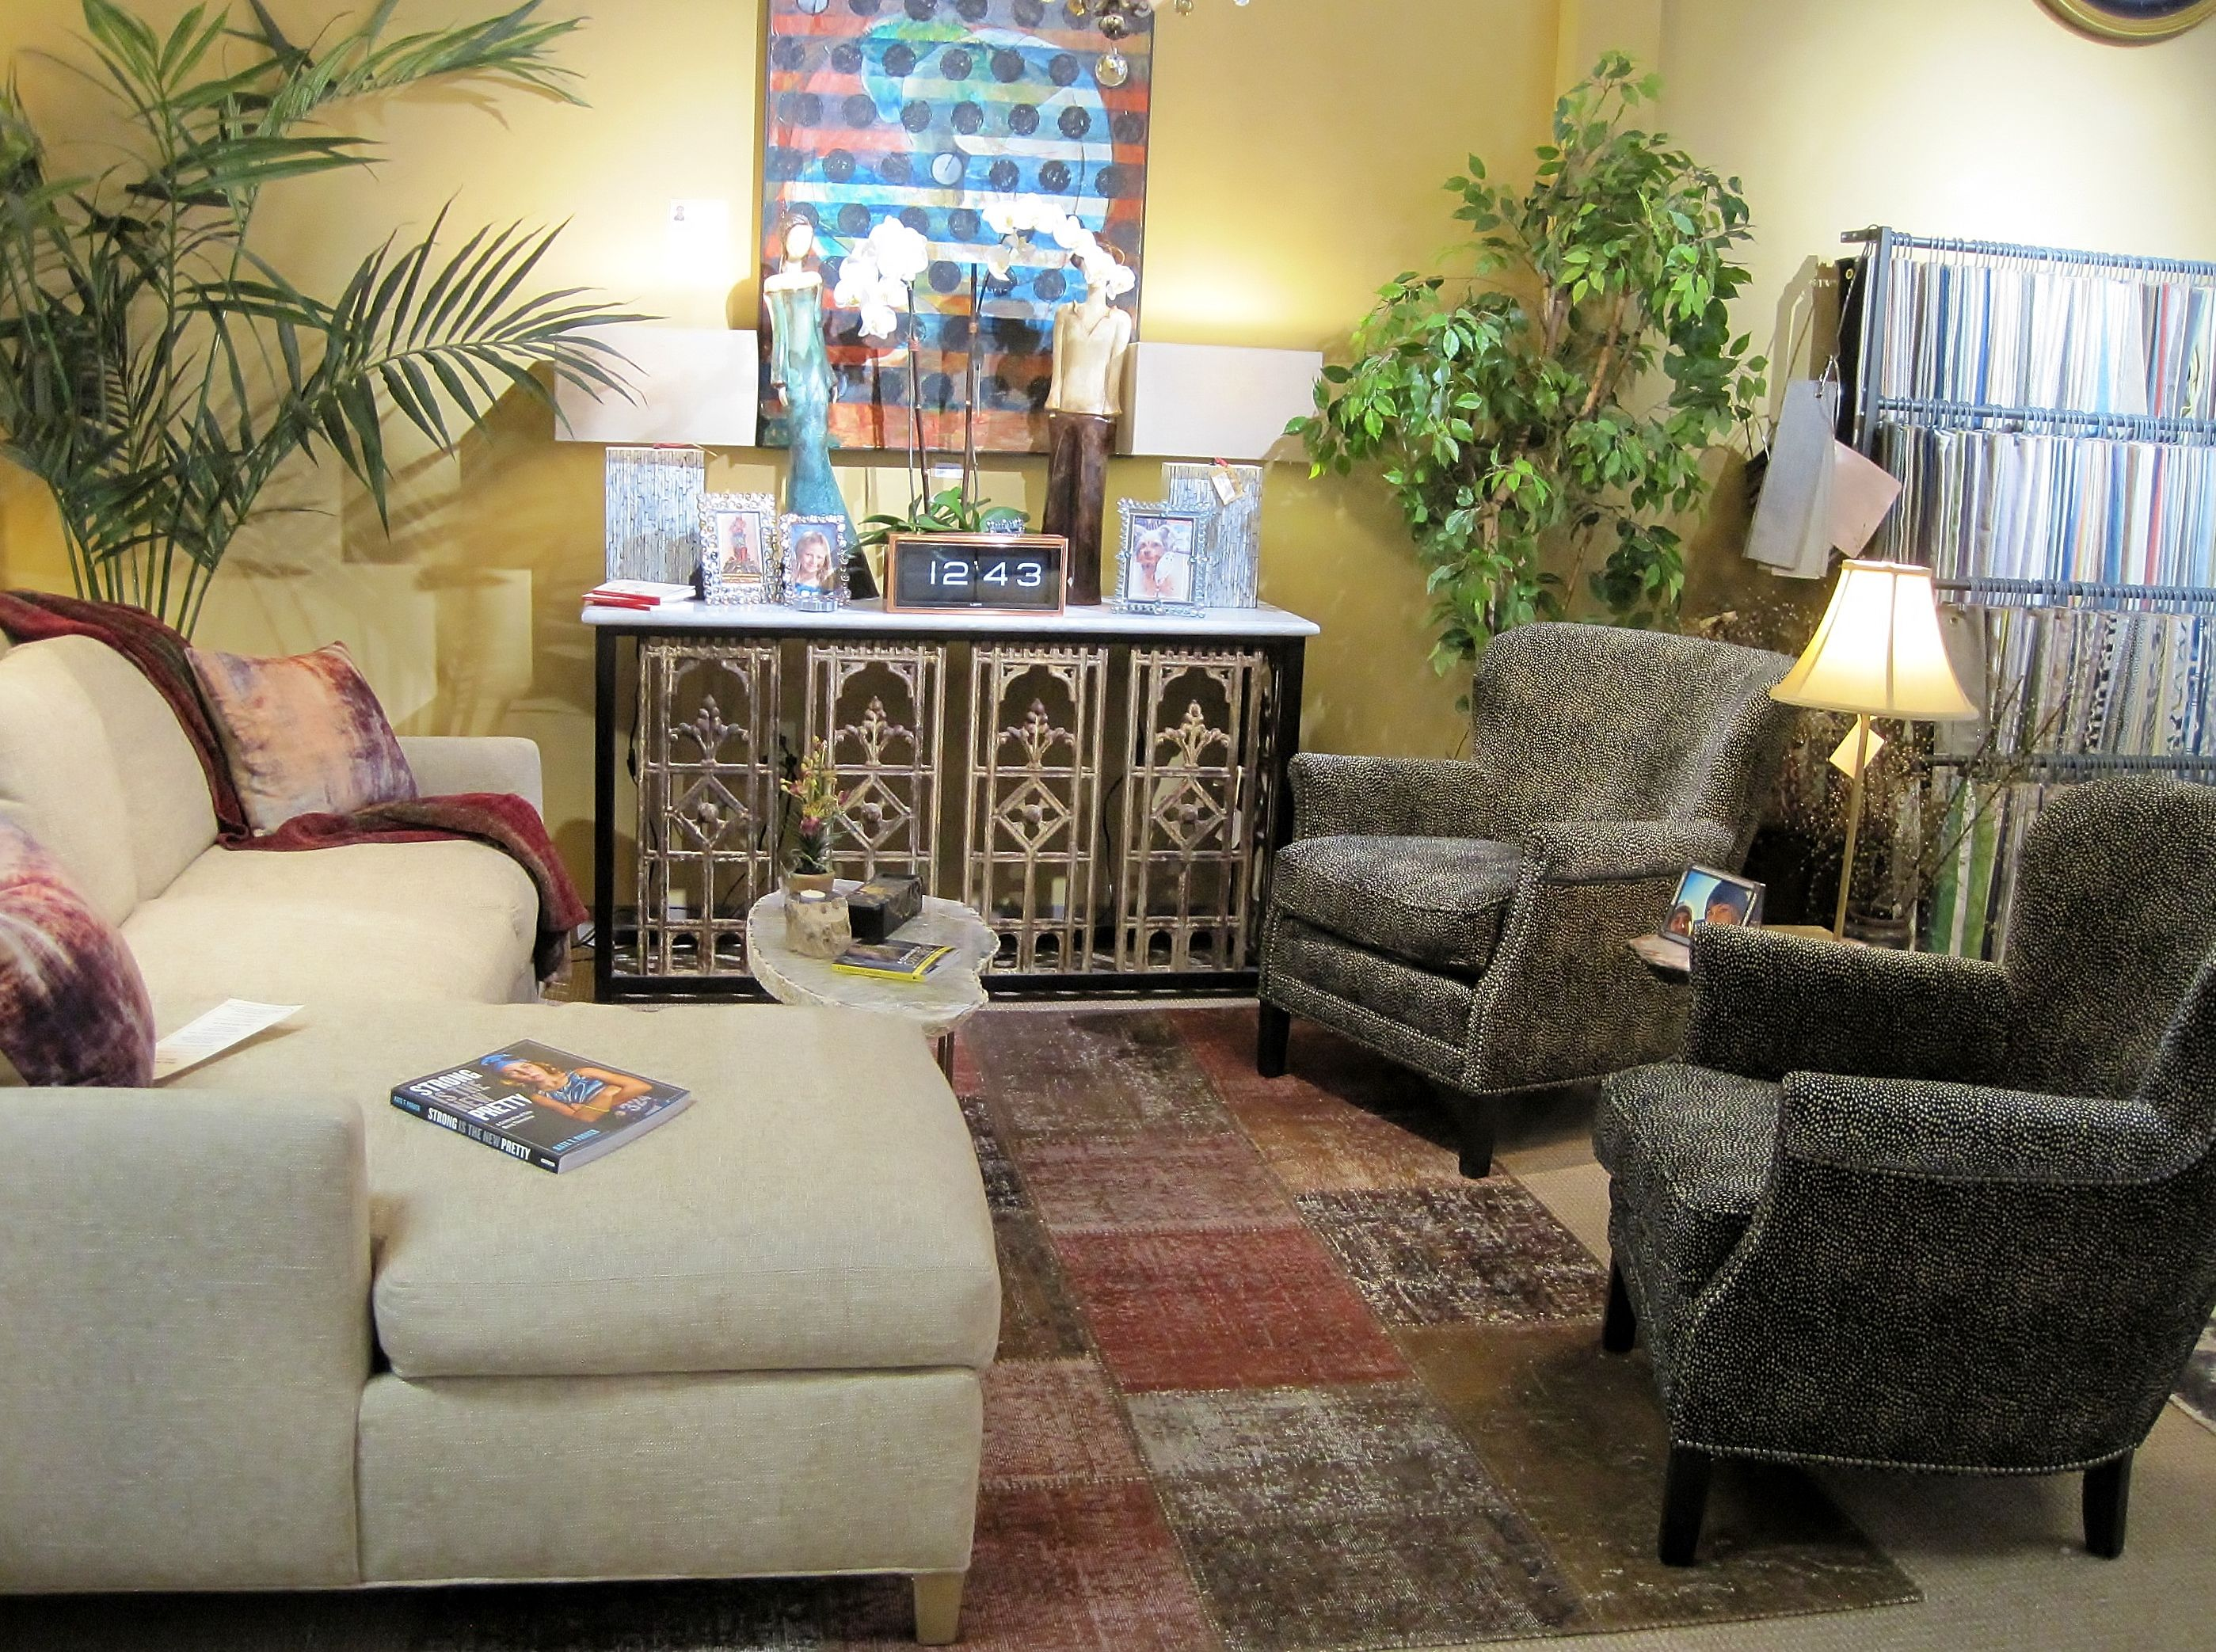 New and Vintage, LEE Industries Sectional Sofa and Chairs ...